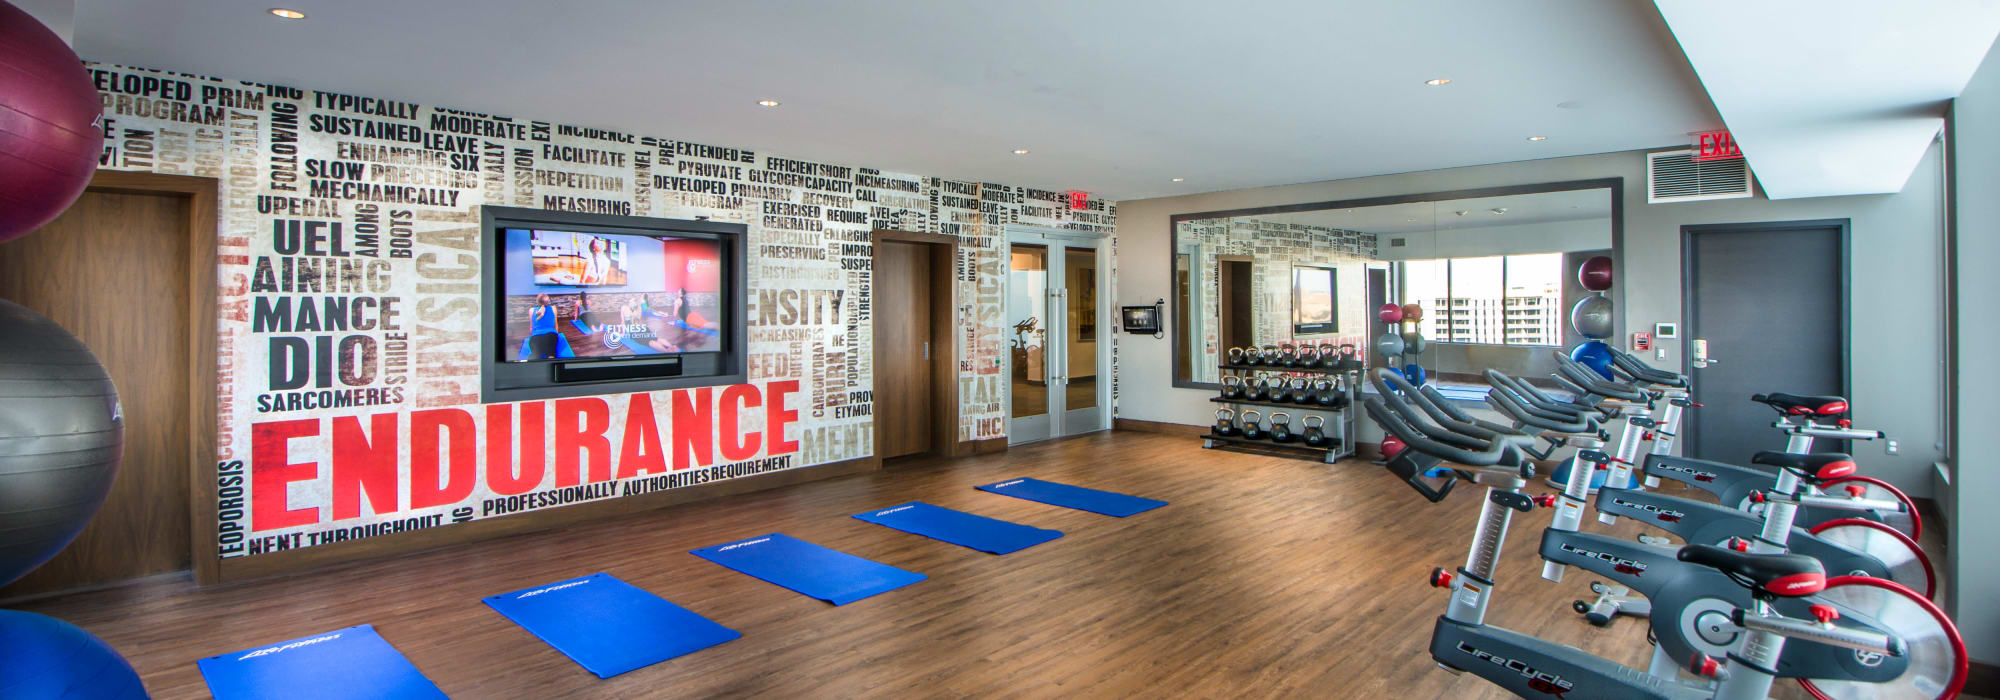 Workout room at Crystal House in Arlington, Virginia